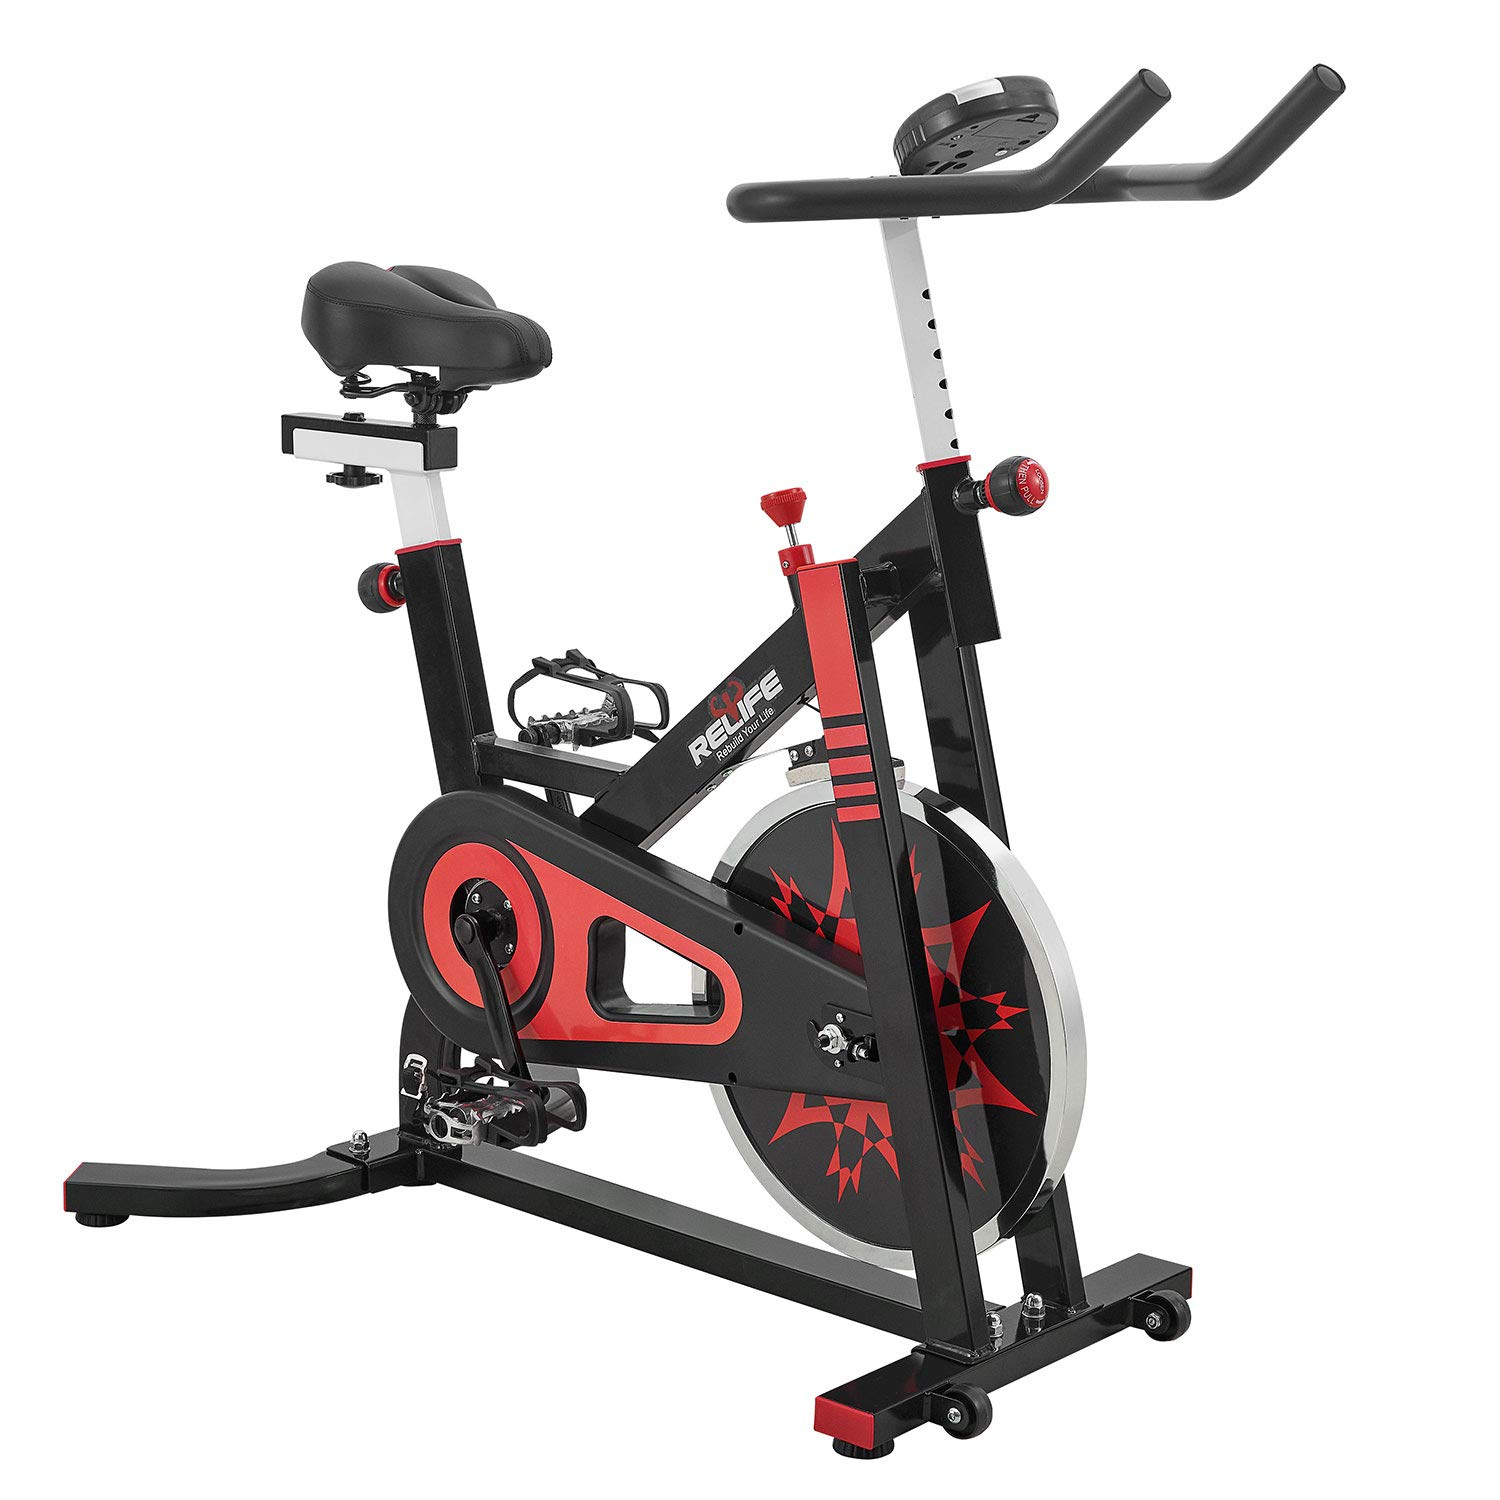 RELIFE REBUILD YOUR LIFE Spin Bike Stationary Indoor Cycling Gym Resistance Workout Home Gym Fitness Machine Exercise Bike by RELIFE REBUILD YOUR LIFE (Image #2)